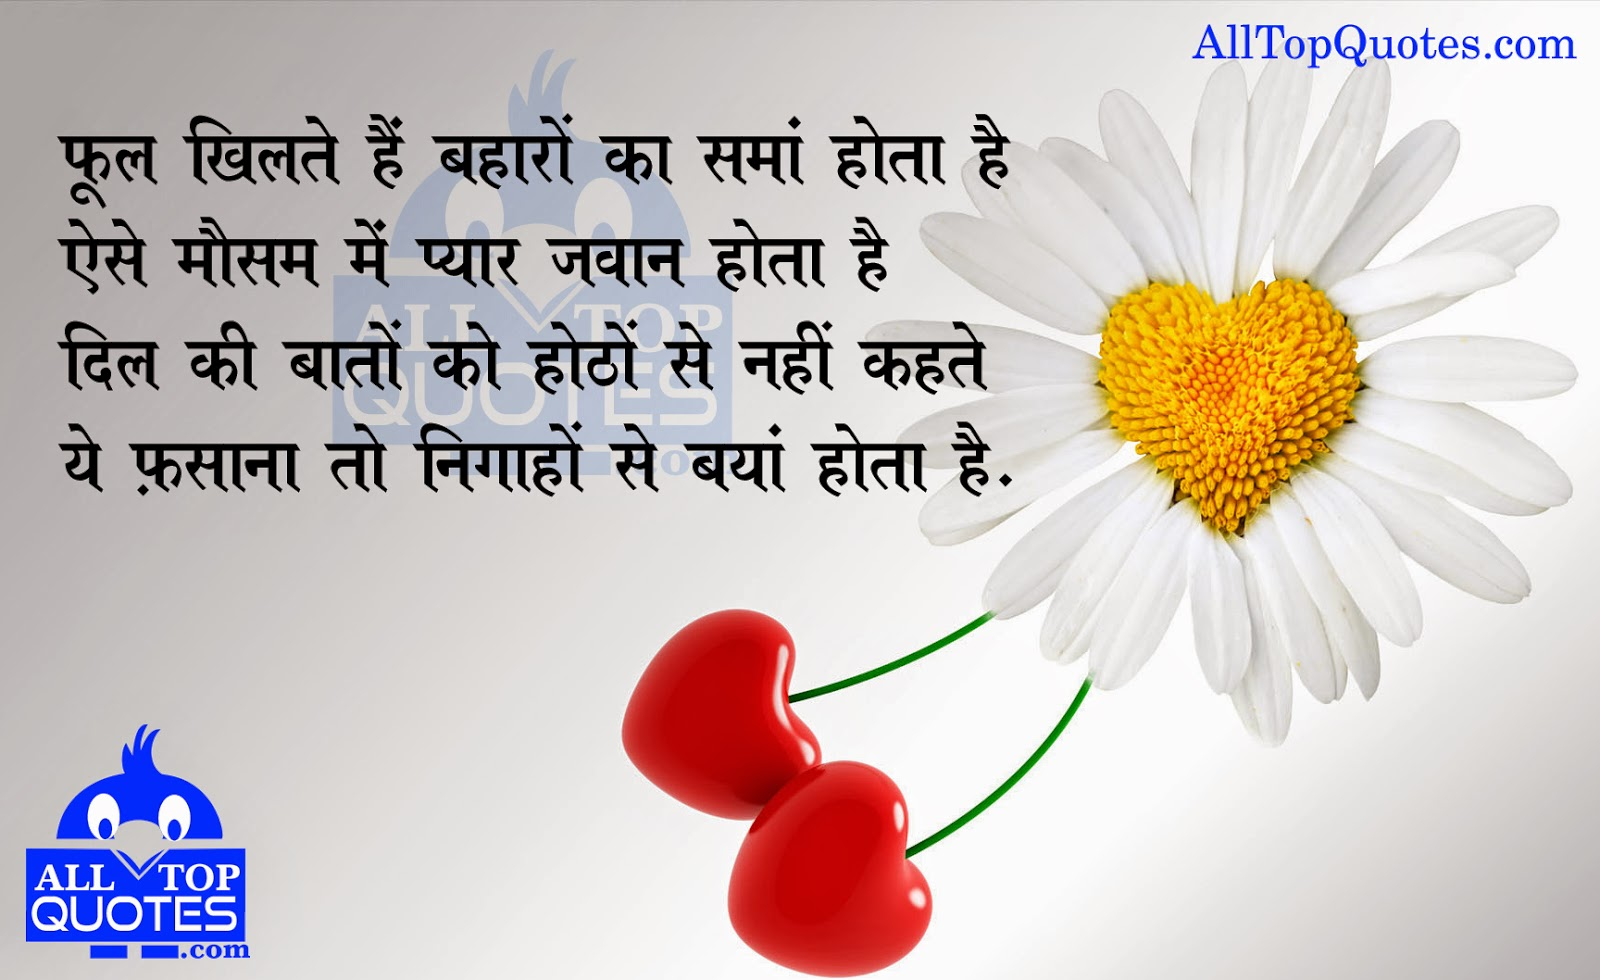 Hindi Quotations on Love Hindi Romantic Love Quotation